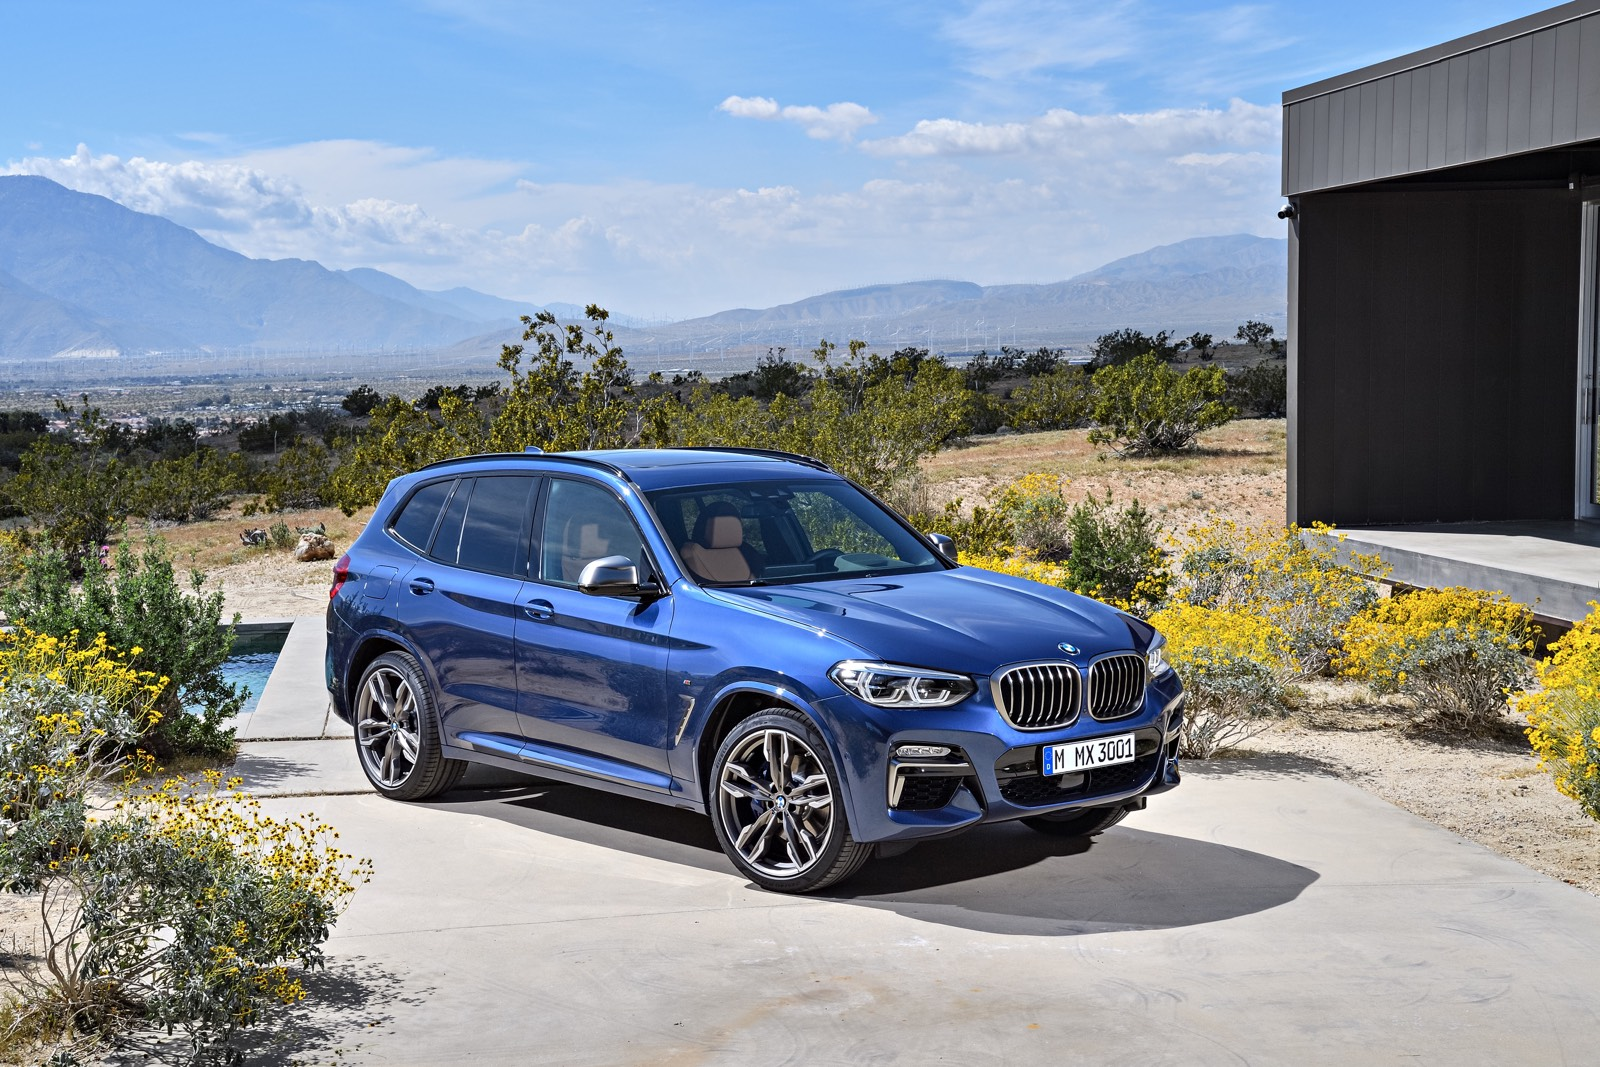 BMW X3 And BMW X4: New Model Variations With In Line 6 Cylinder Engines.